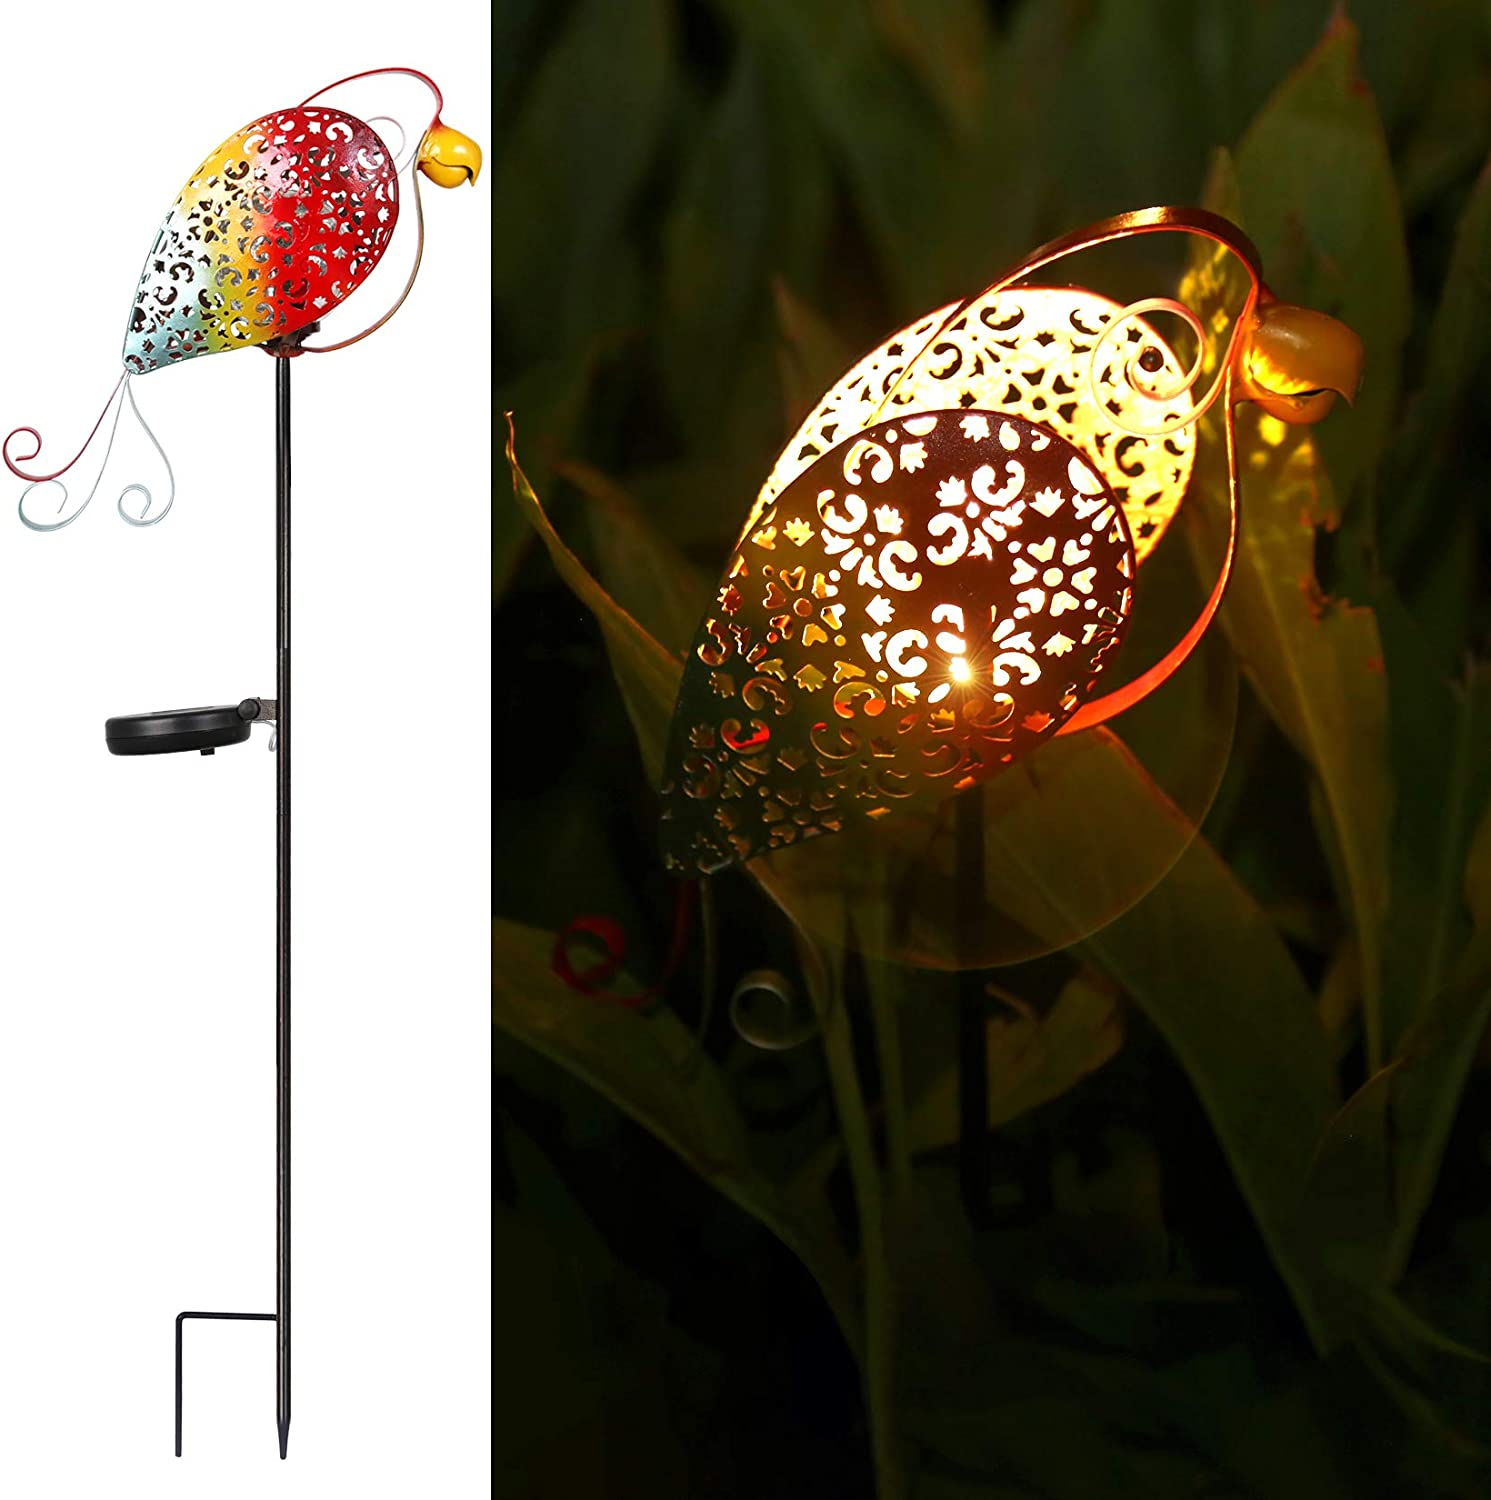 Parrot Solar Garden Light Toco Outside Yard Lights Outdoor Decorative Stake Cute Patio Decor Pathway Lawn Path Decorations Metal Landscape Waterproof Gifts Backyard 1 Pack